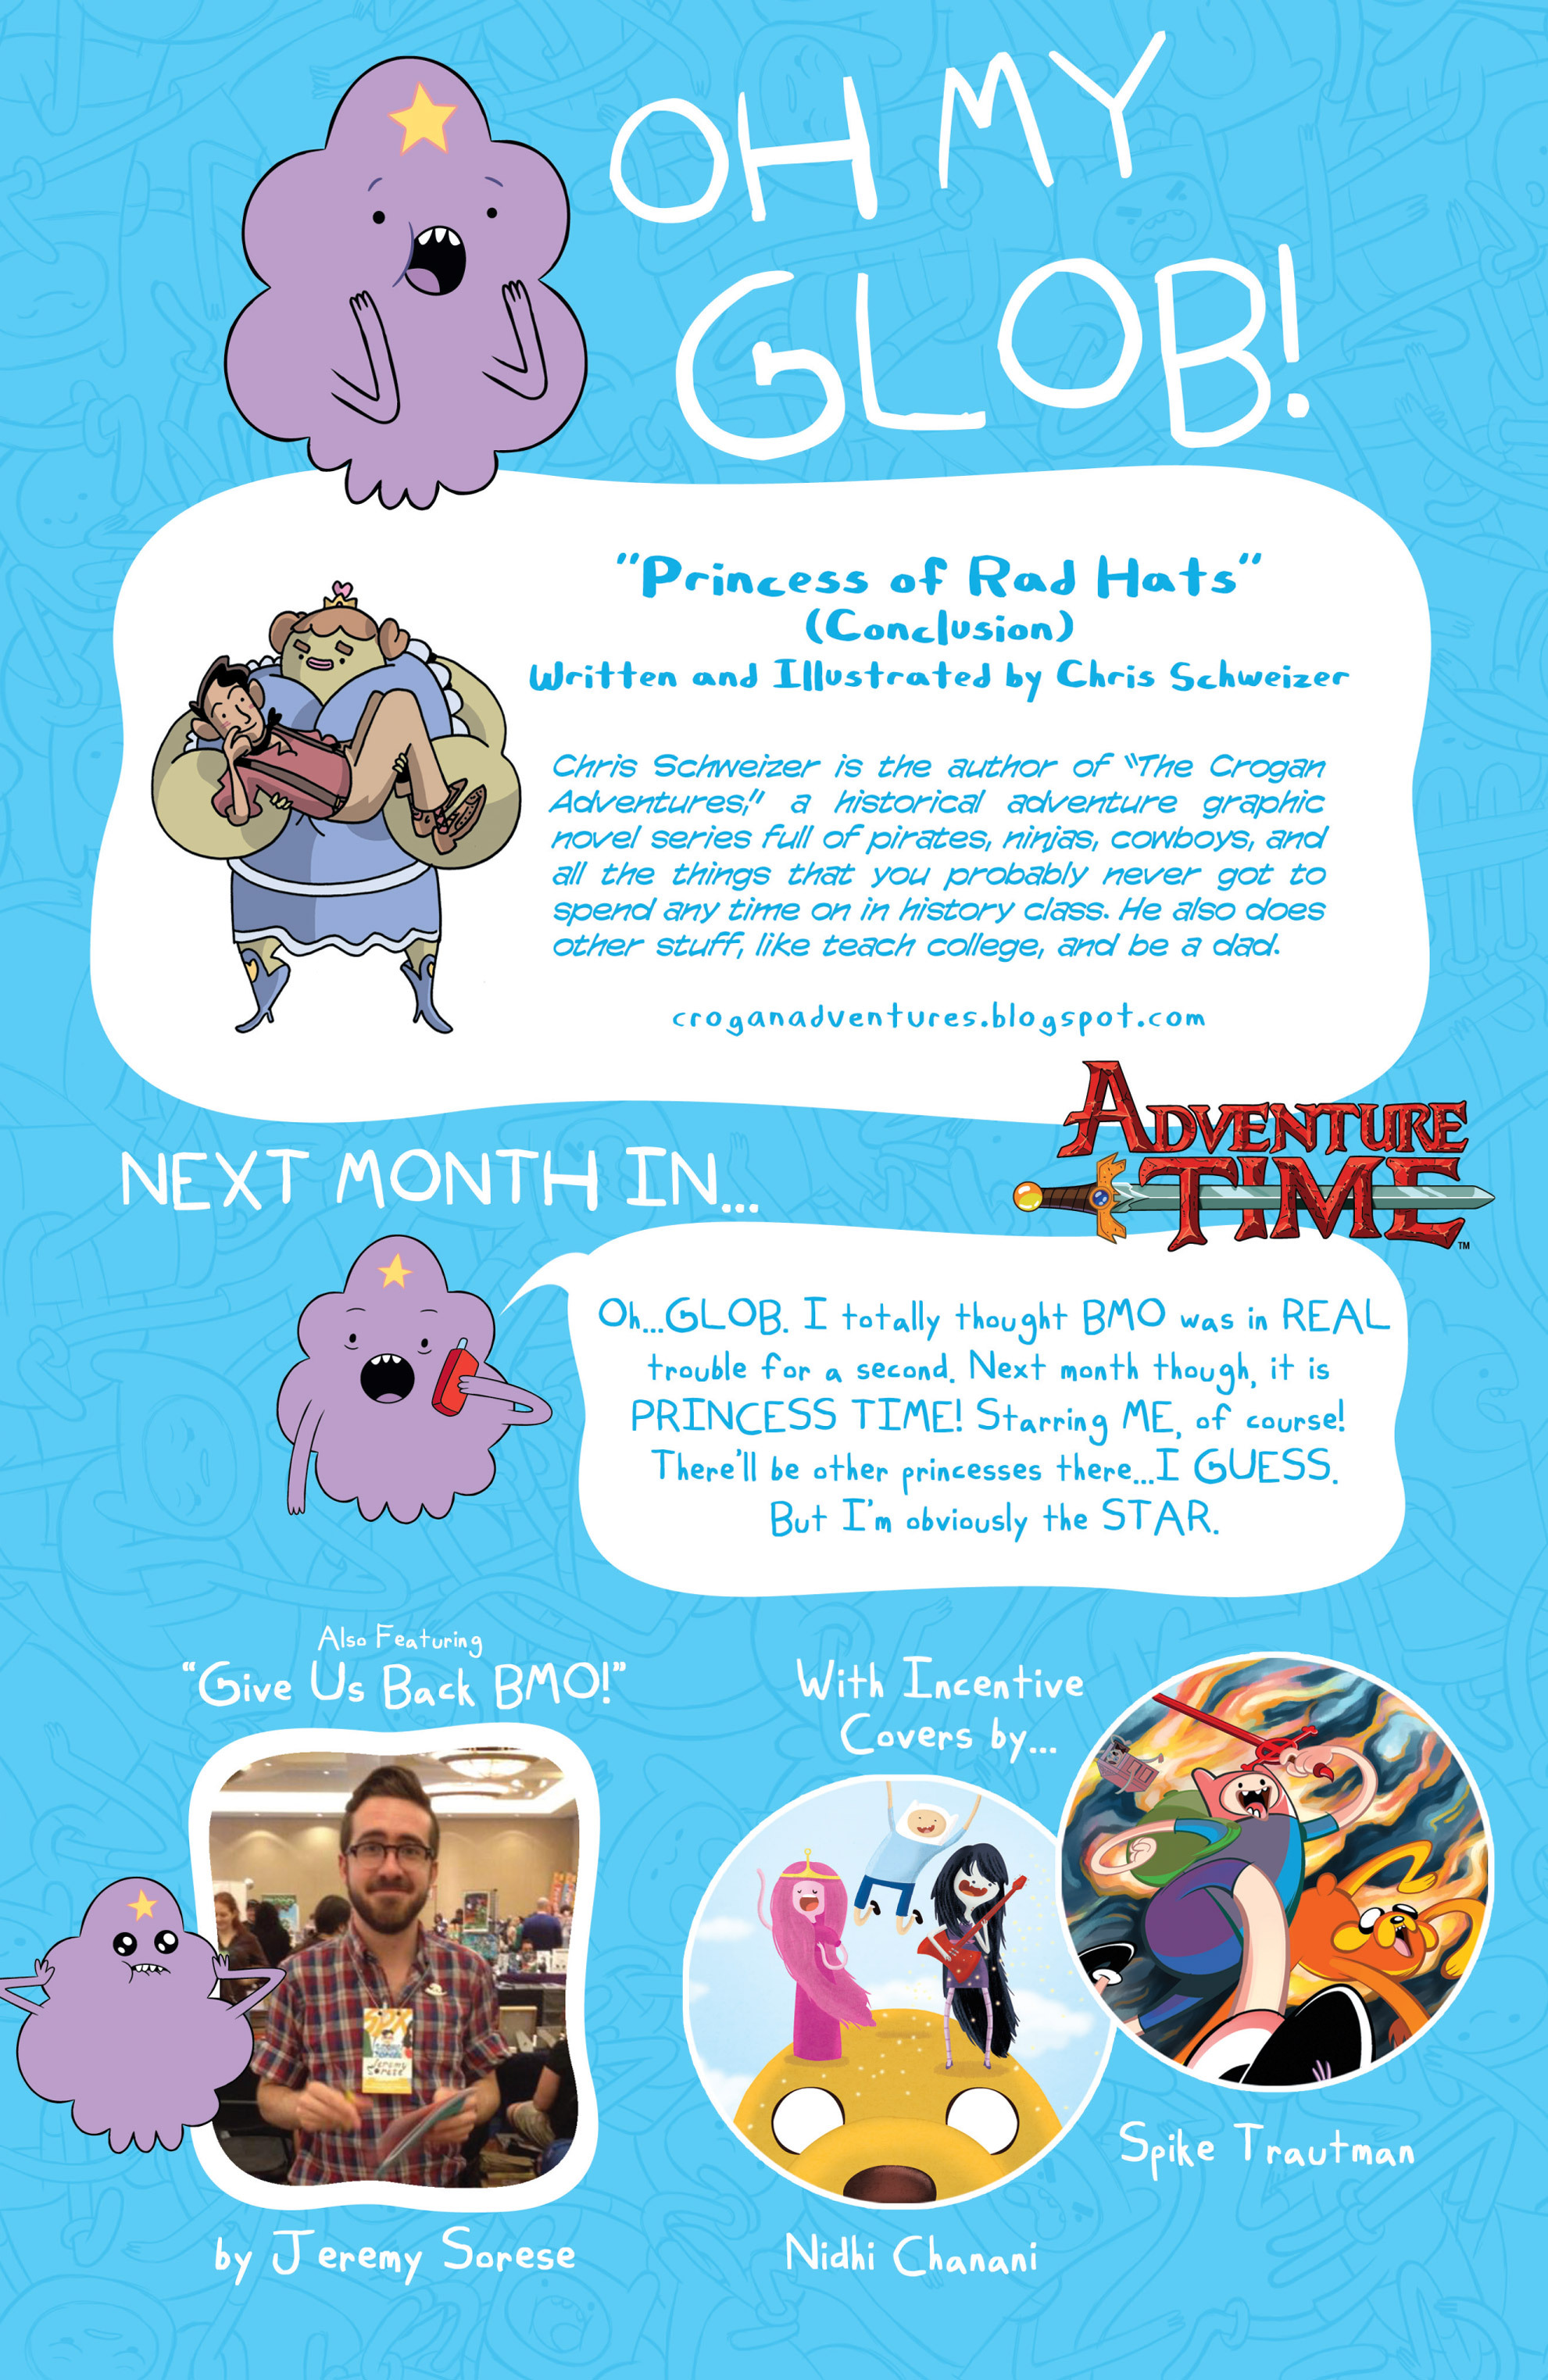 Read online Adventure Time comic -  Issue #14 - 25